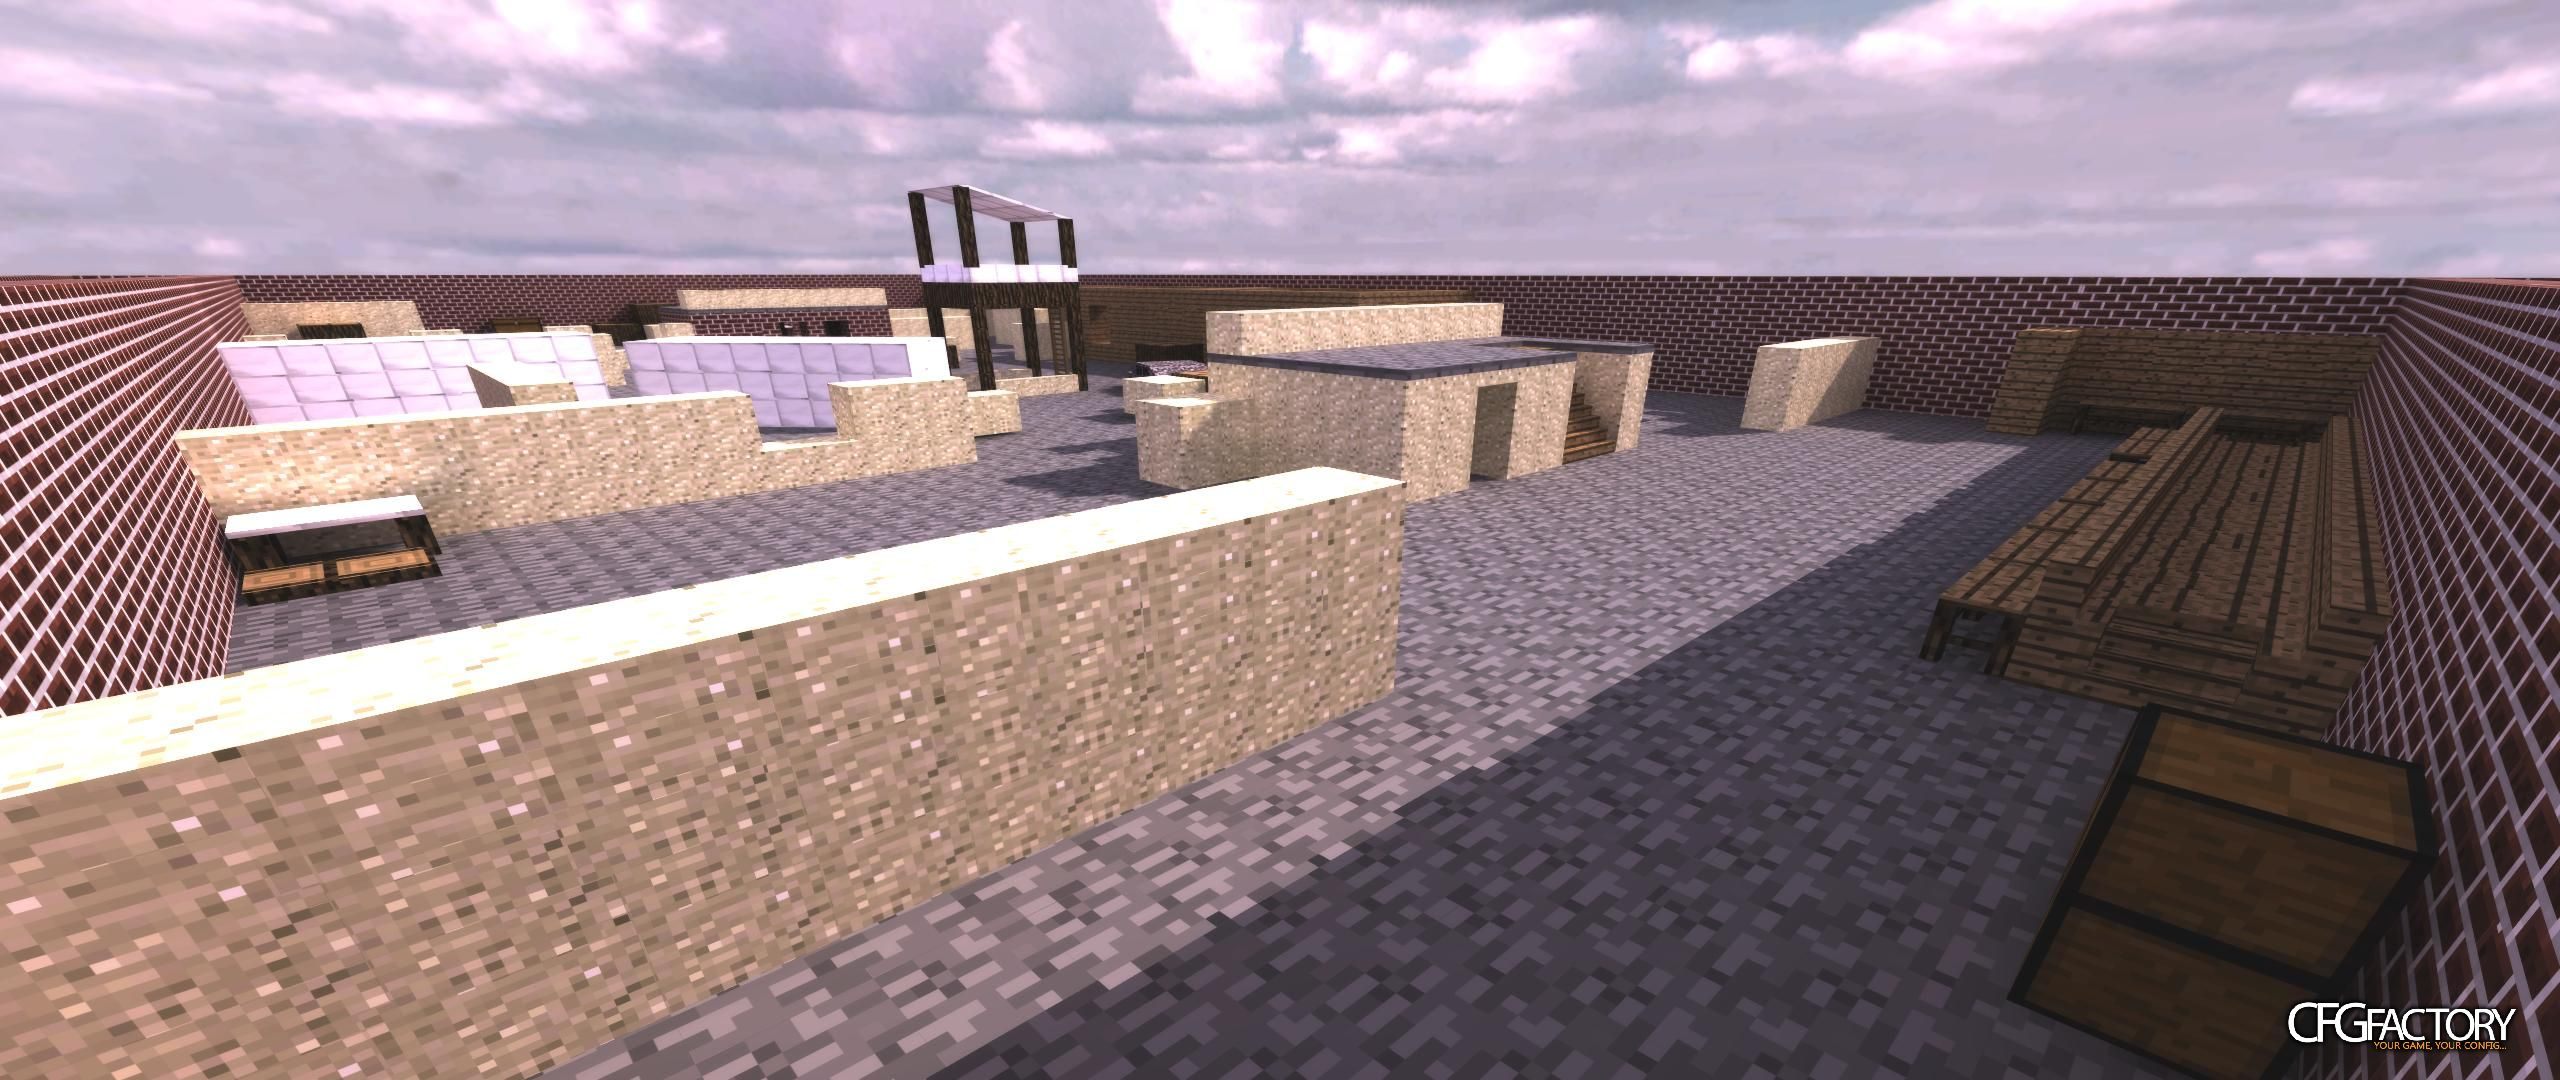 Minecraft Killhouse download - CFGFactory